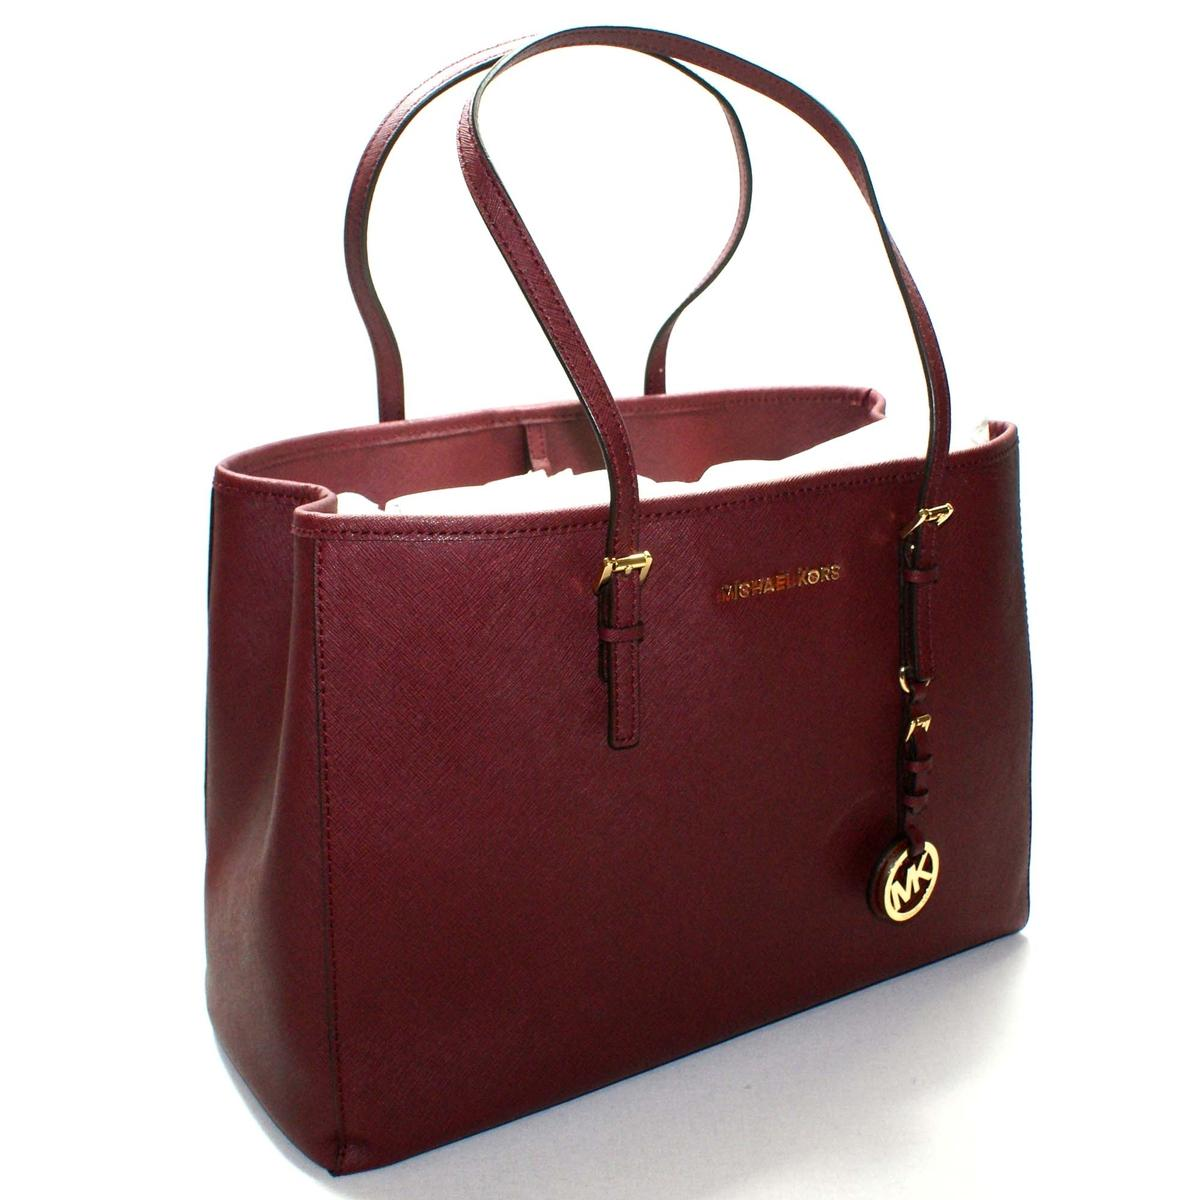 29d9e94305c4 Home · Michael Kors · Saffiano Jet Set Travel East West Tote Cinnabar.  CLICK THUMBNAIL TO ZOOM. Found ...